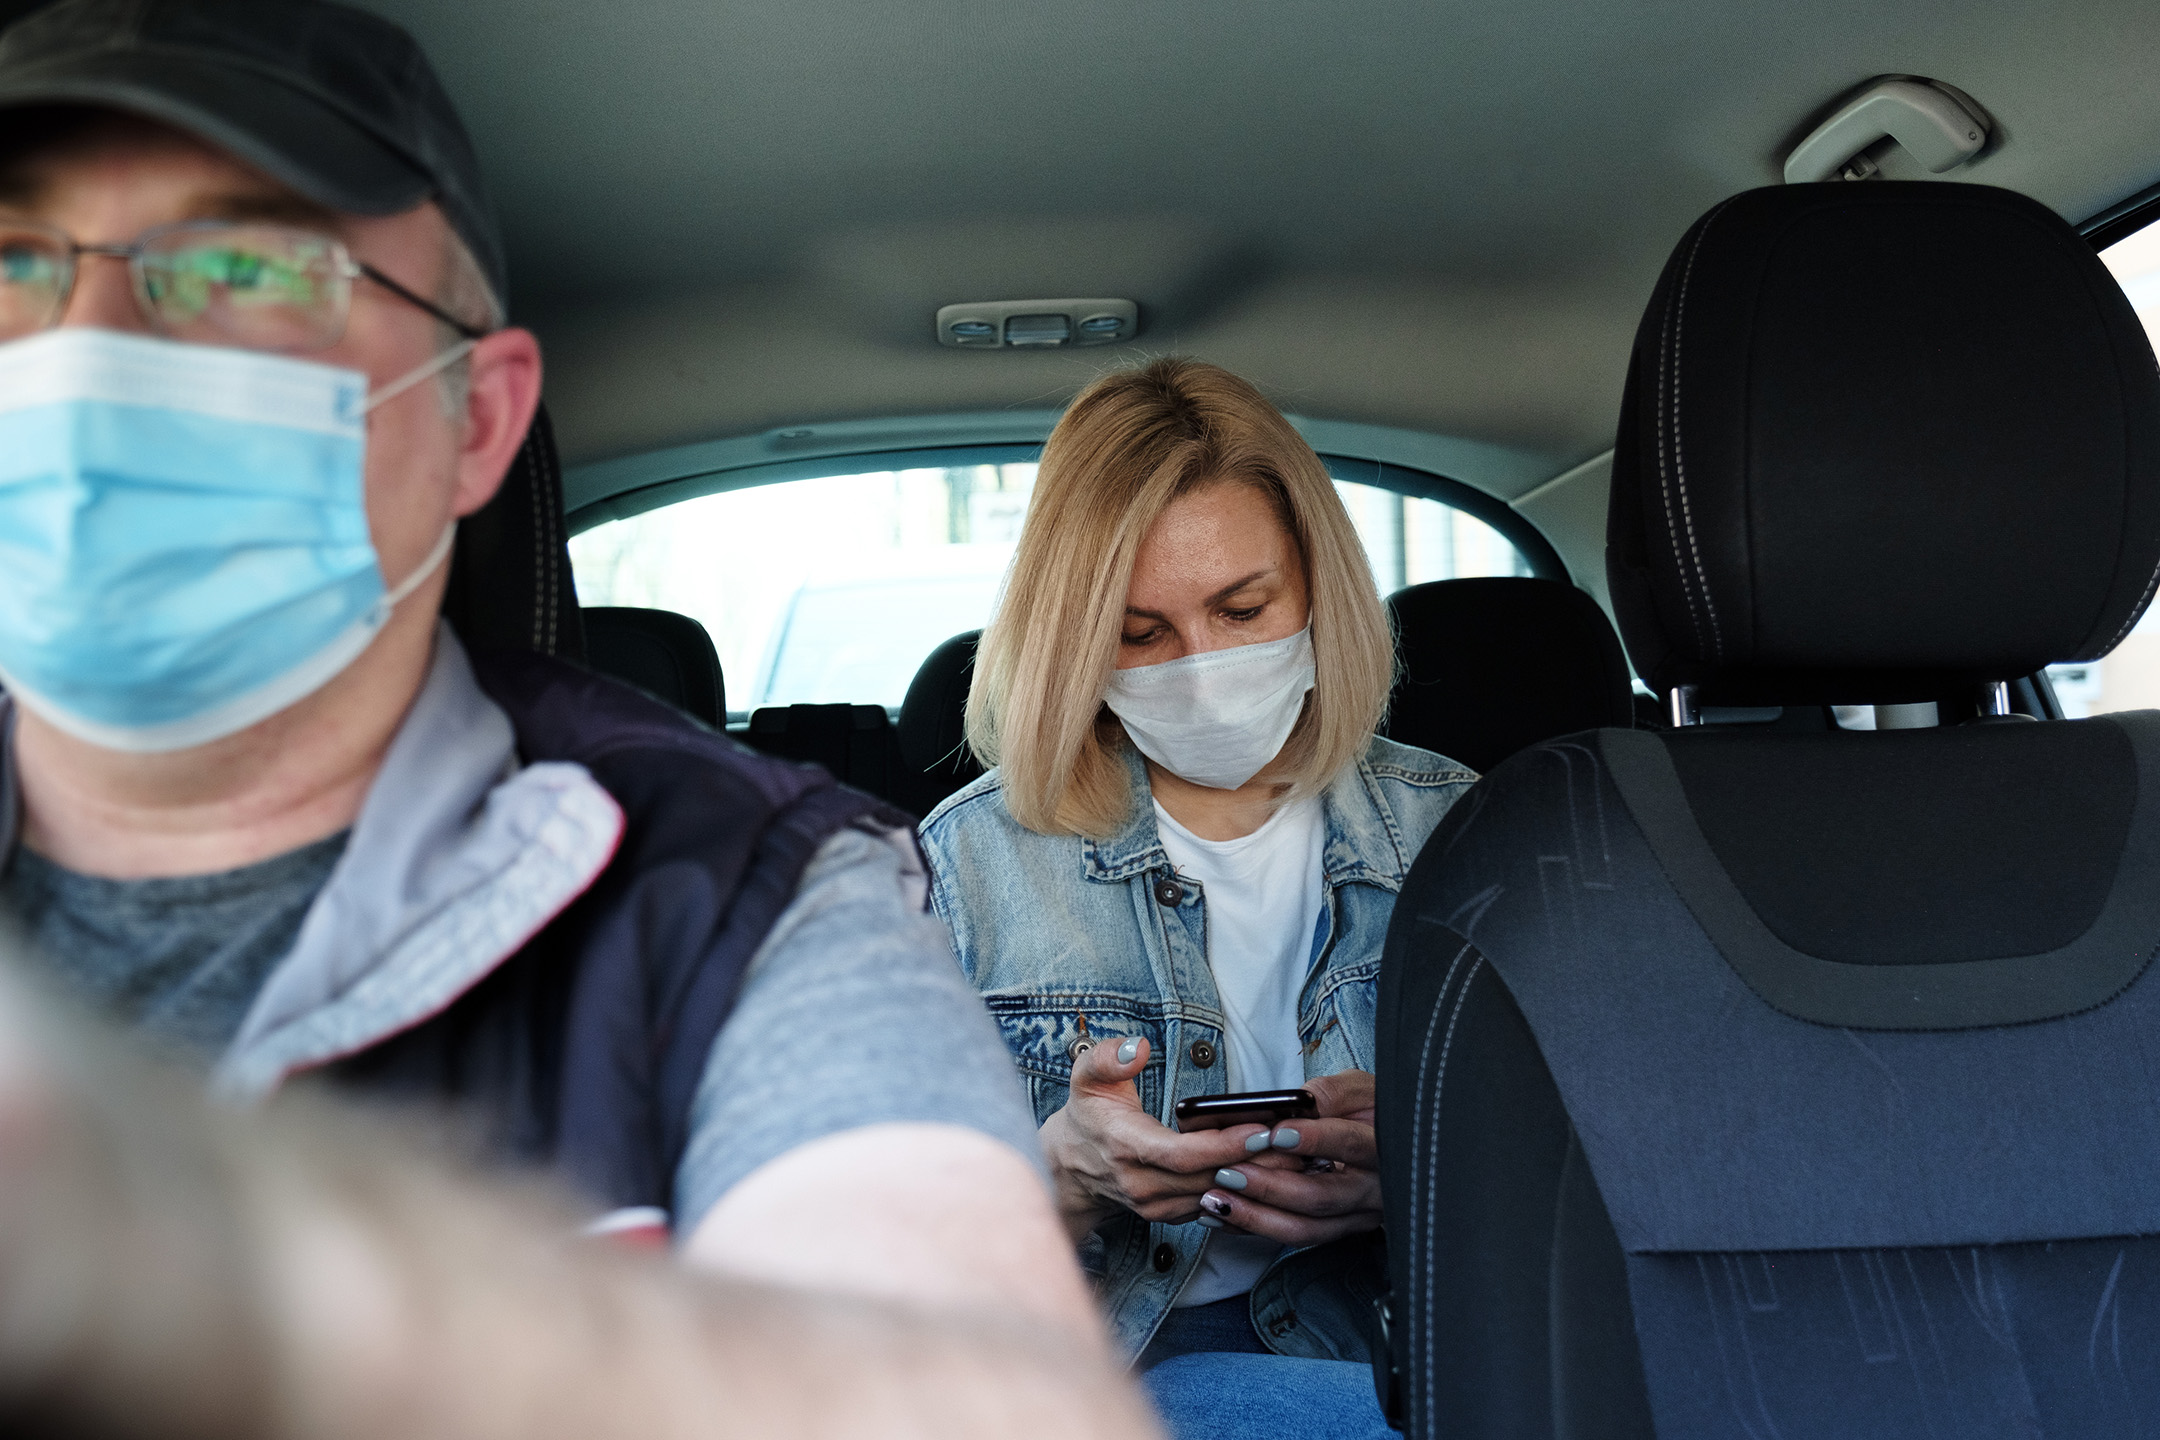 No Financial Support For Taxi Drivers During The Pandemic